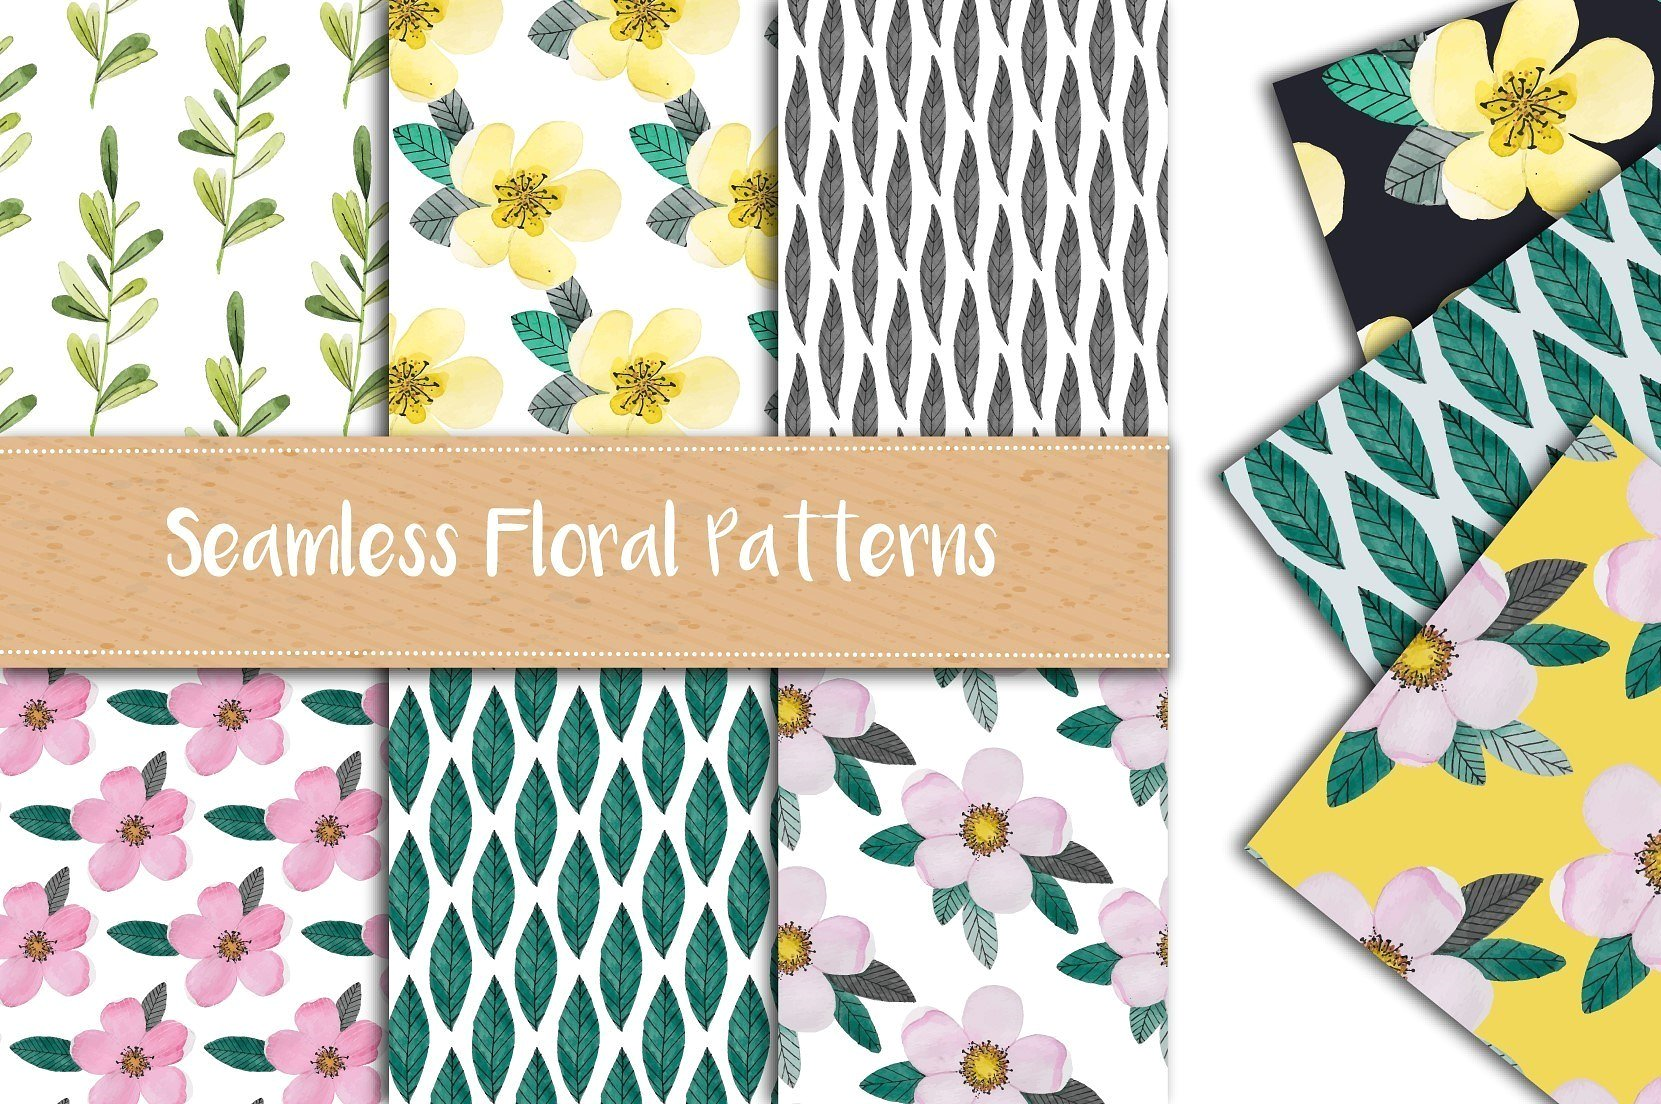 WatercolorFloralPatternSet